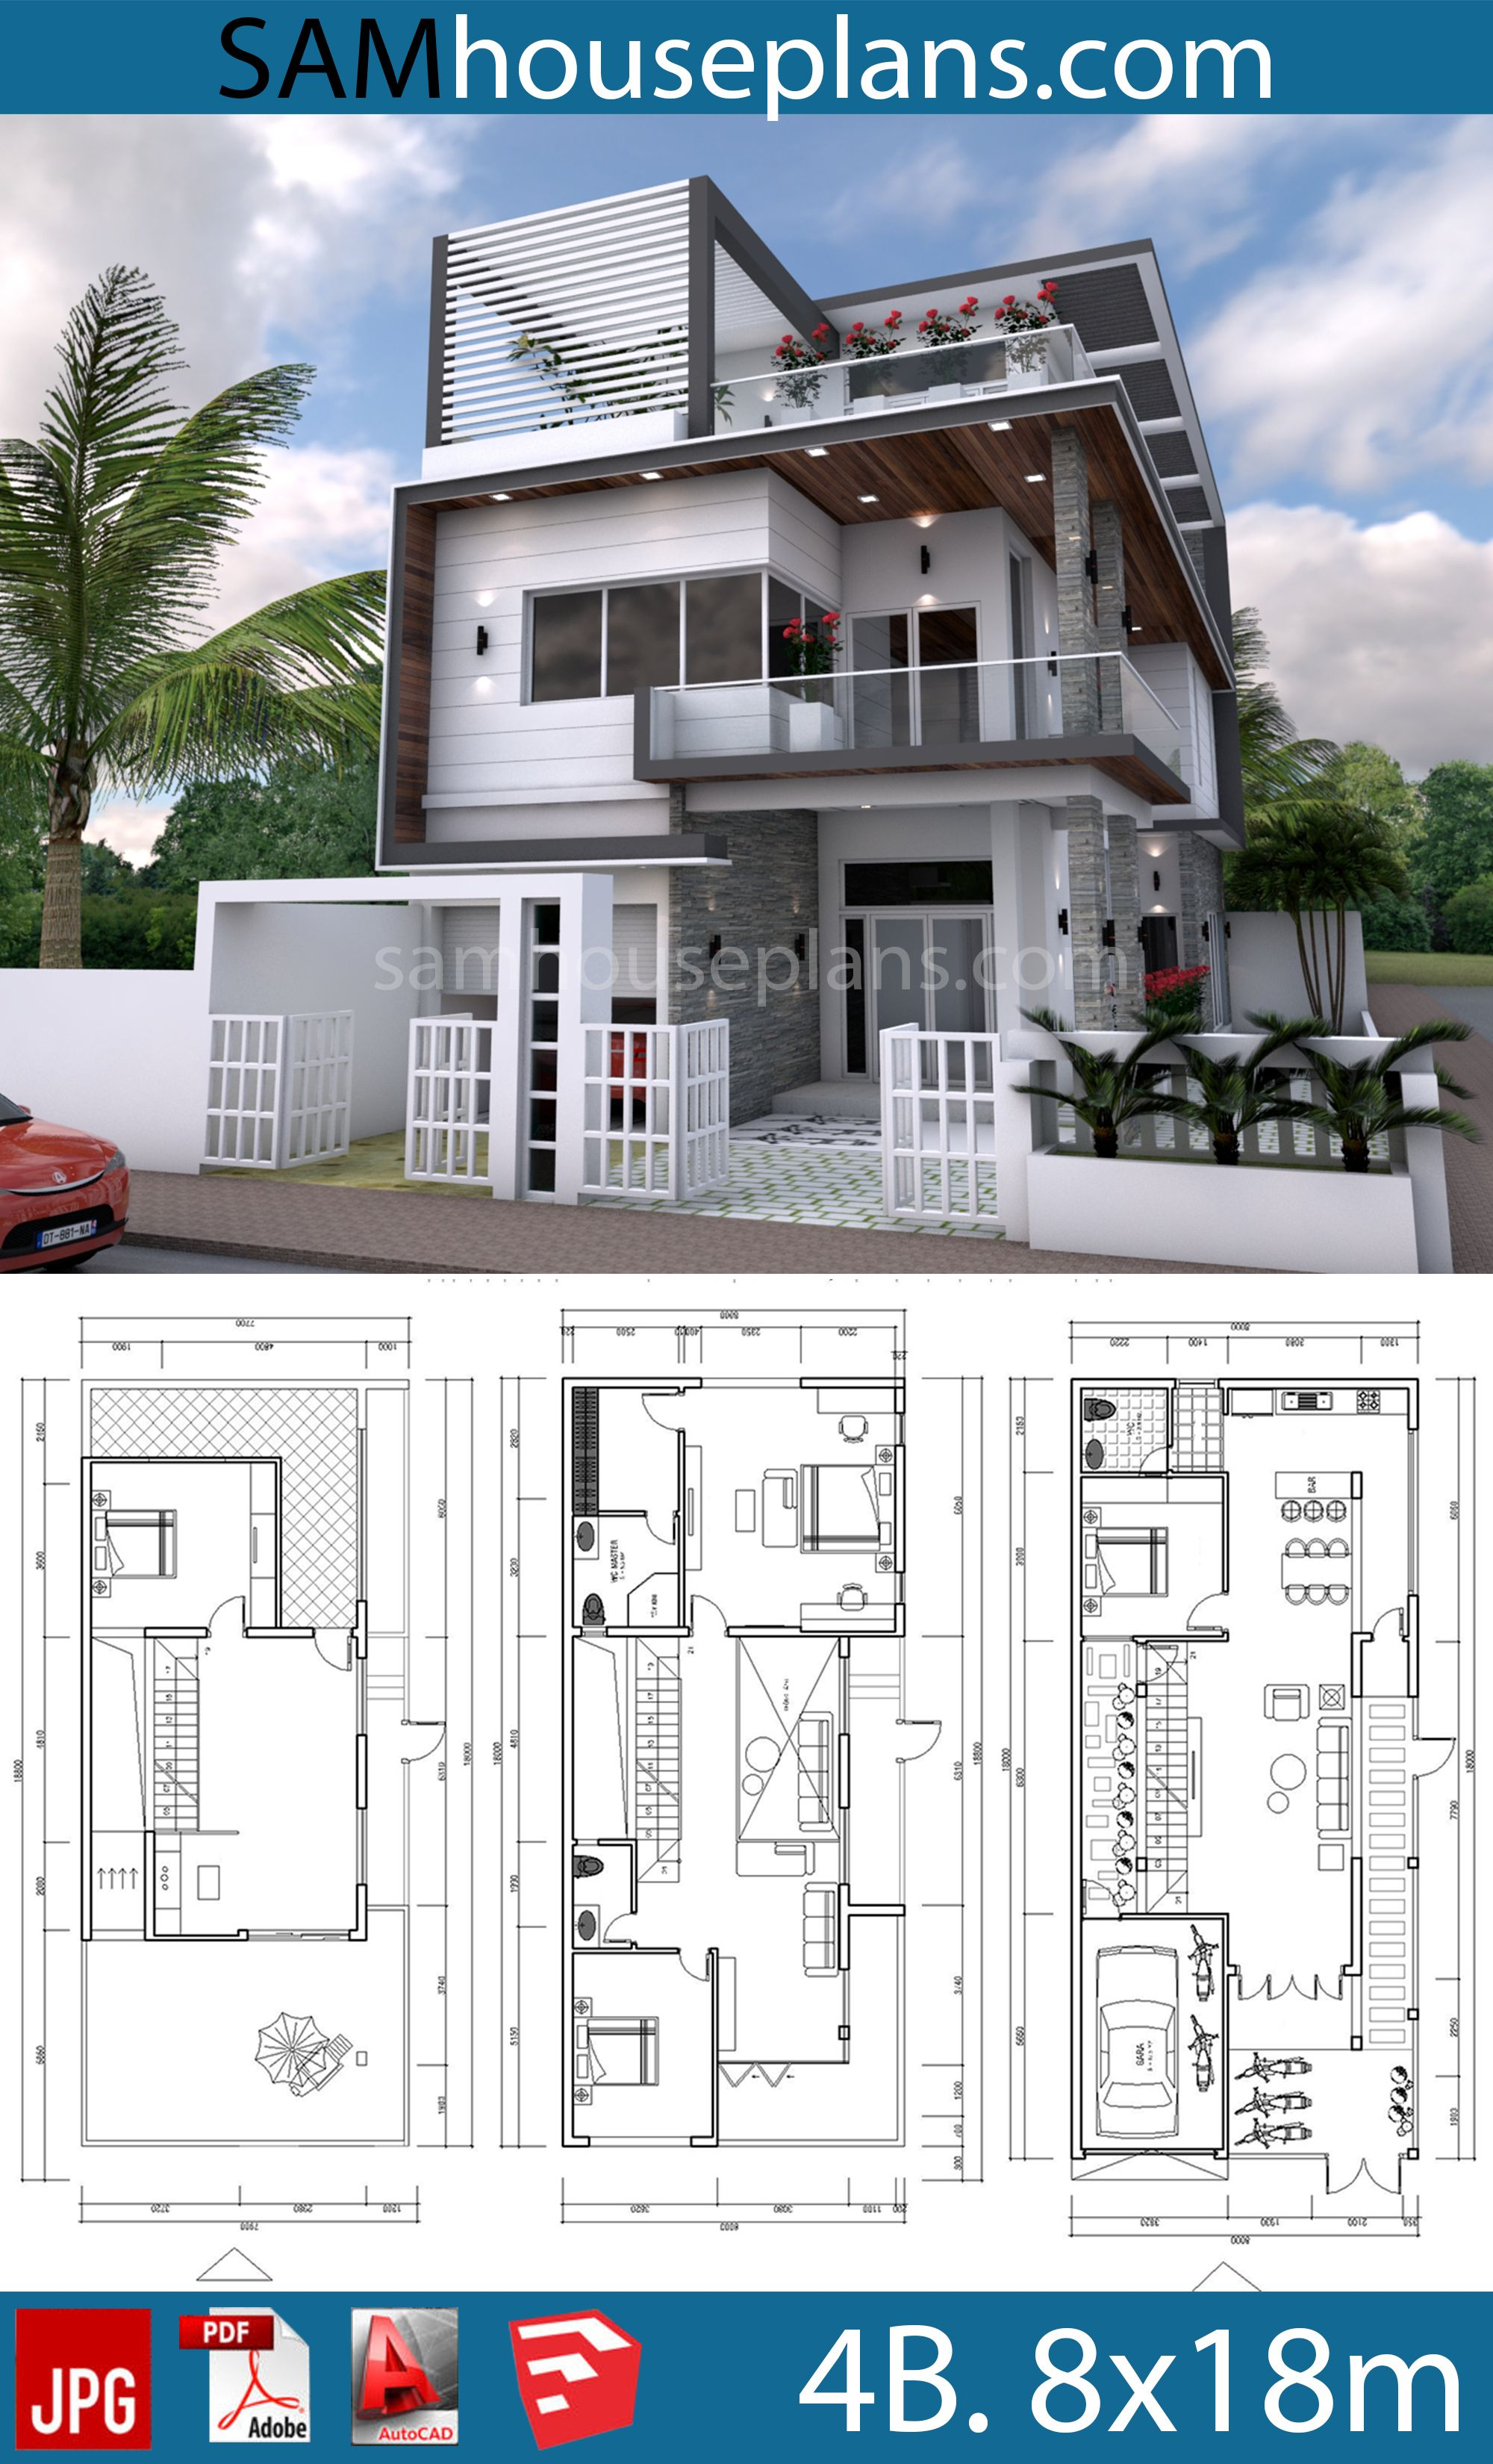 House Plans 8x18m With 4 Bedrooms House Plans Free Downloads Dream House Pictures Architecture House House Layouts